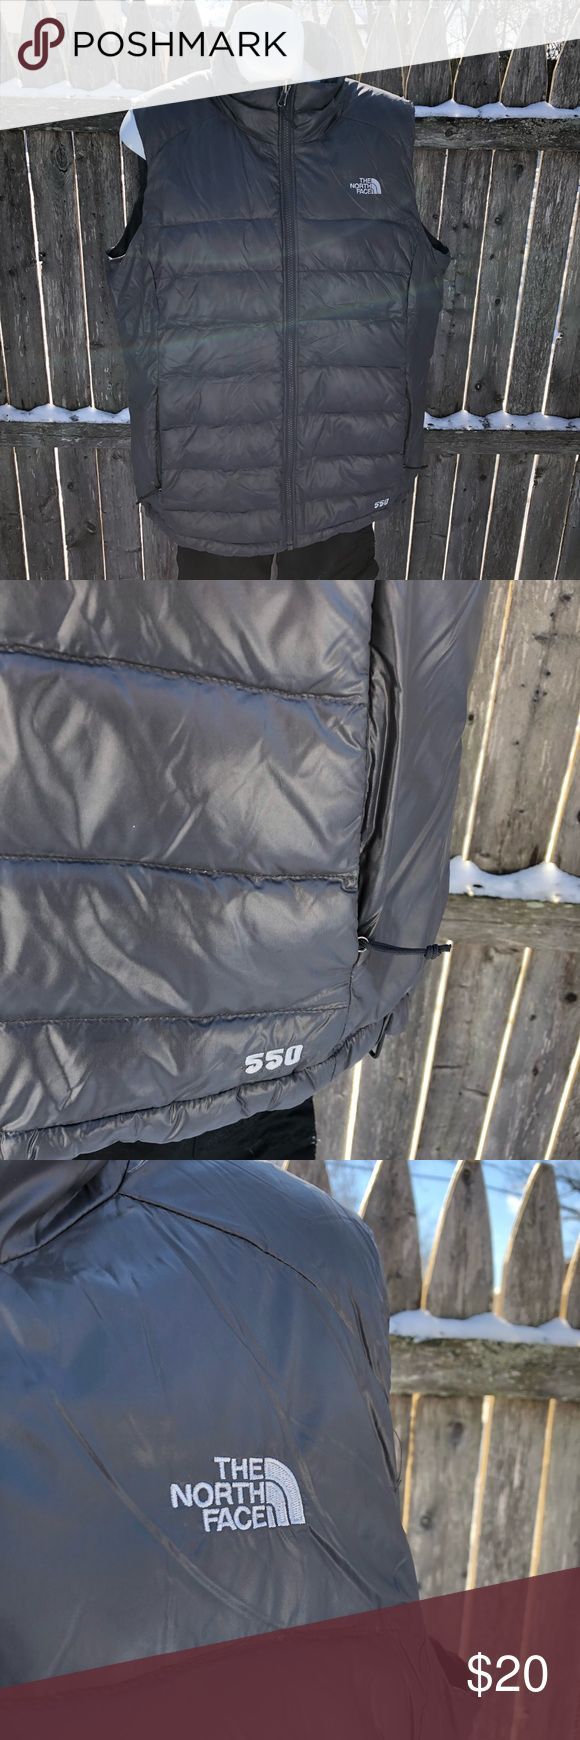 The North Face 550 Weight Goose Down Vest This is a very gently used goose down vest from The North Face. Original owner. Purchased from TNF outlet Cincinnati in 2012. Worn maybe 10 times. Winters in Ohio call for whole winter coats. Not vests. The North Face Jackets & Coats Vests